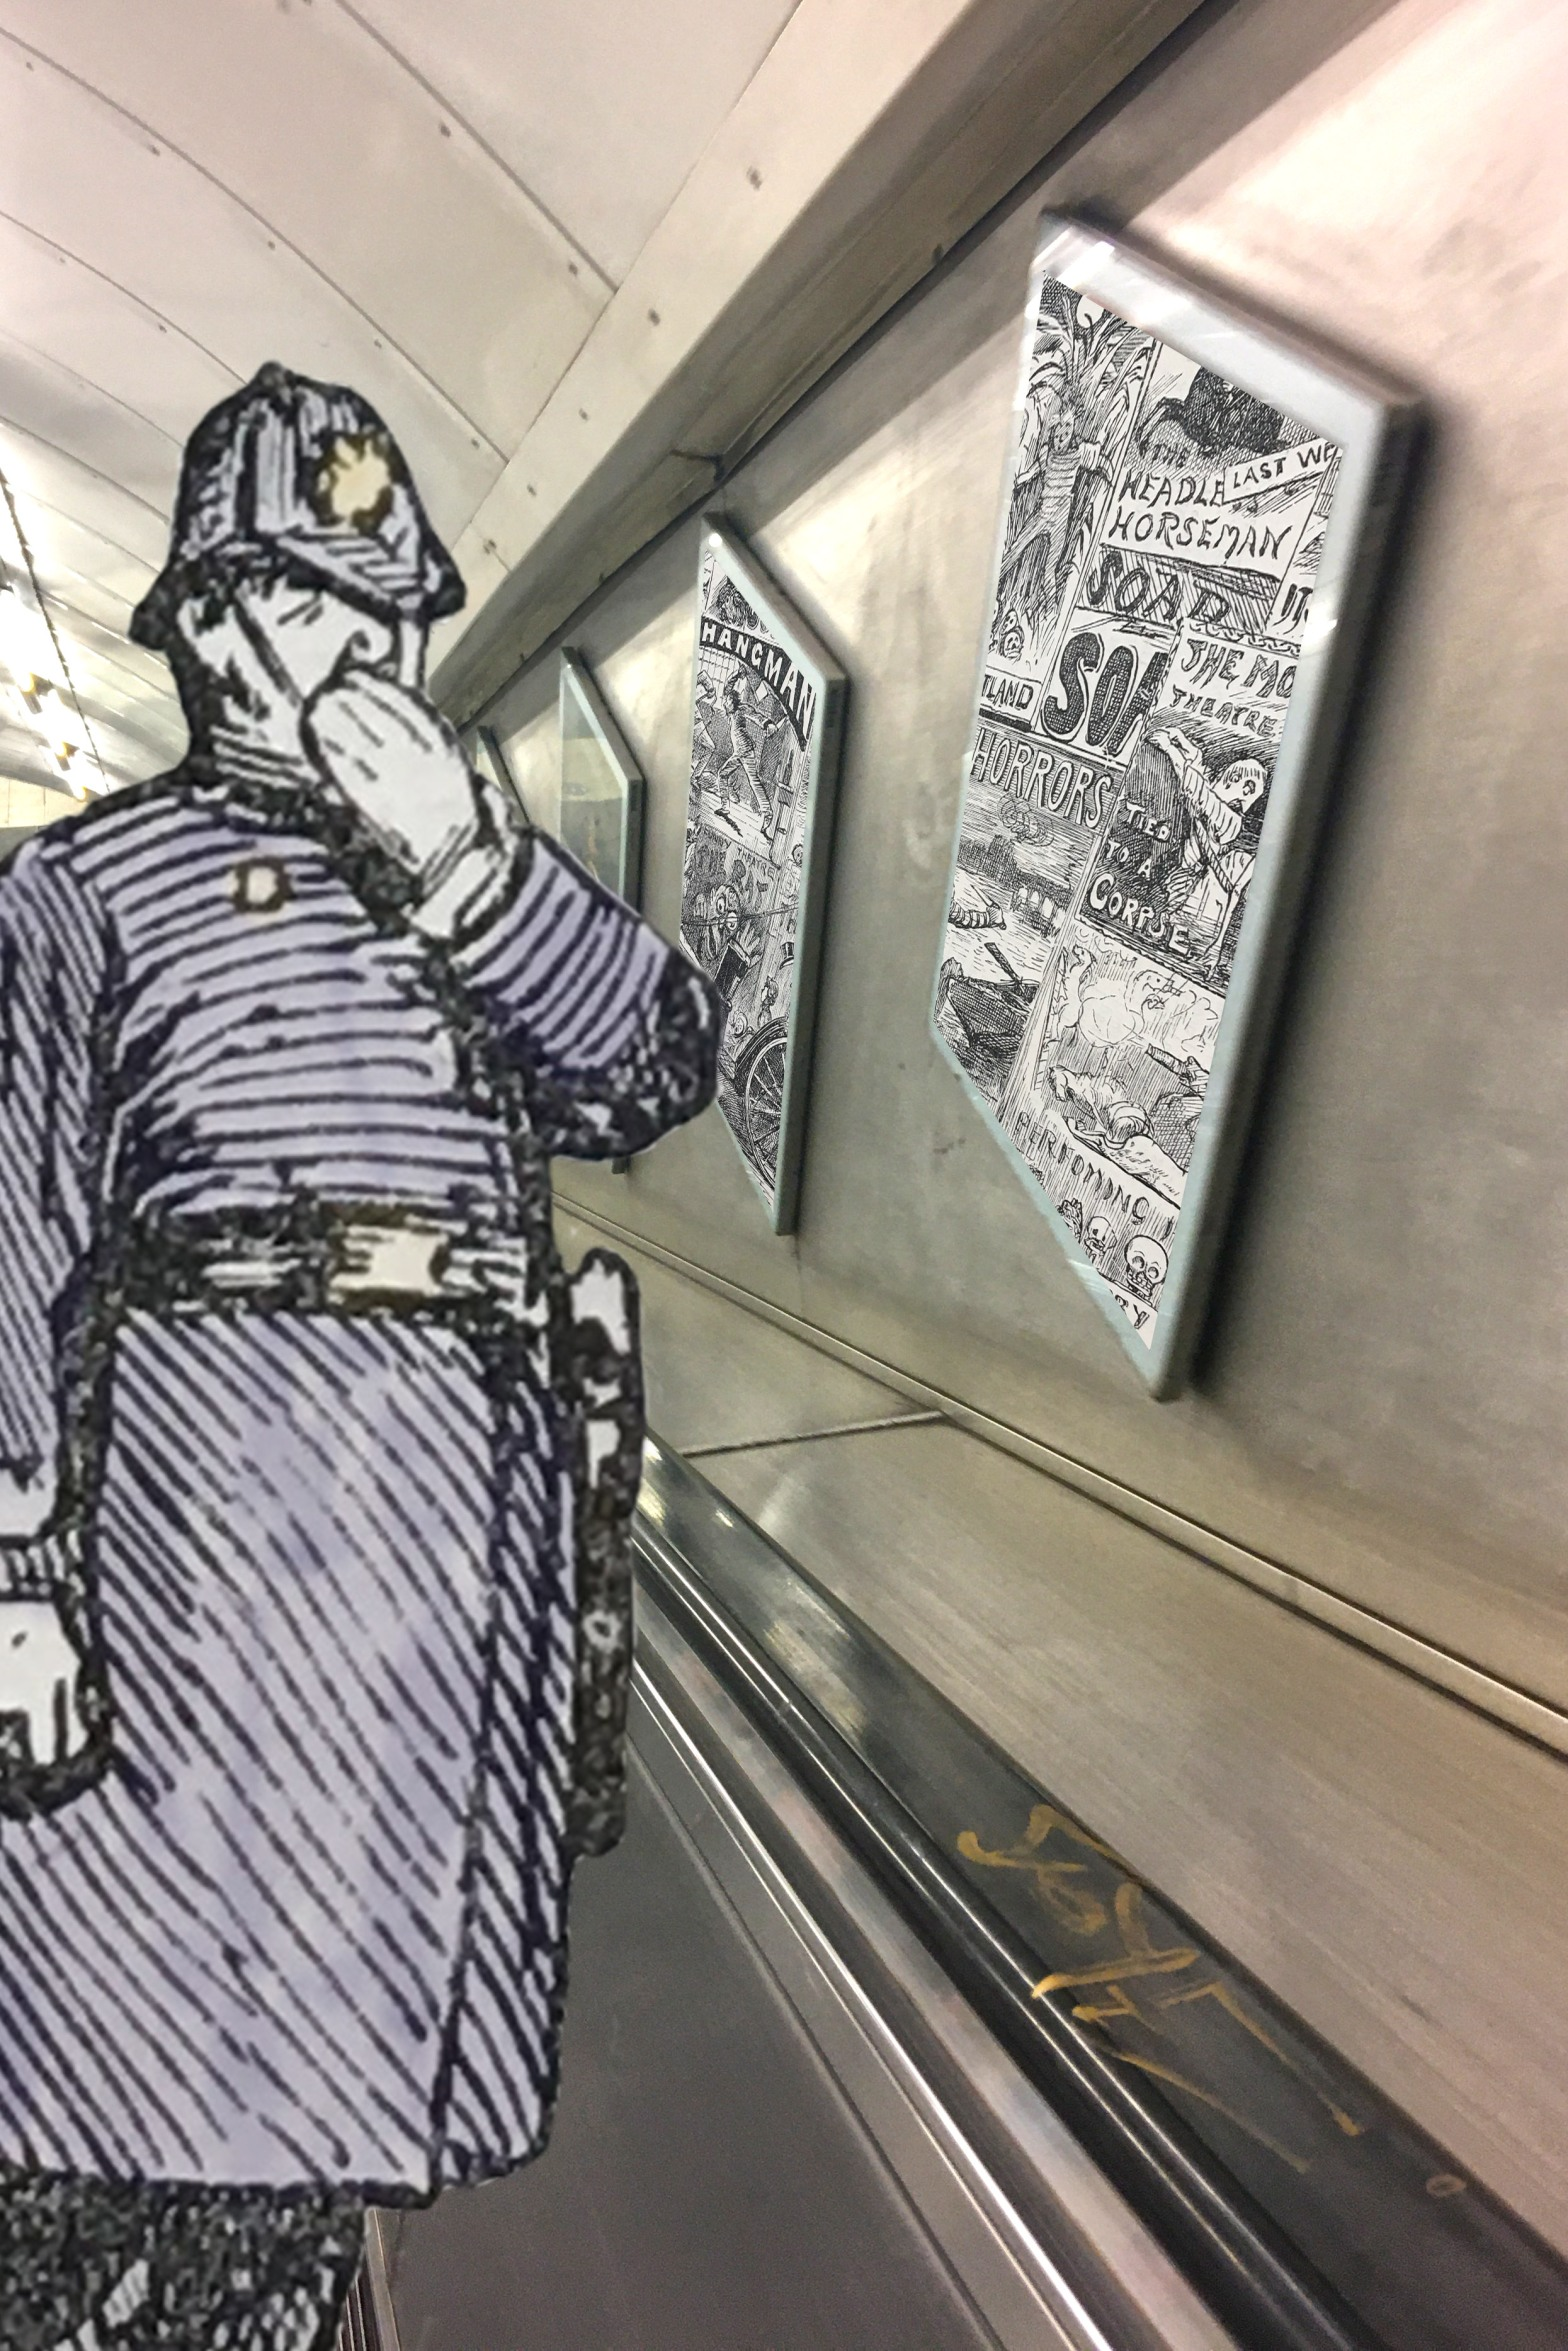 """Harry Furness's """"How We Advertise Now"""" from the 3 December 1887 issue of """"Punch"""" (including hand-coloured policeman figure) on the Jubilee Line escalator in Green Park Station, London"""